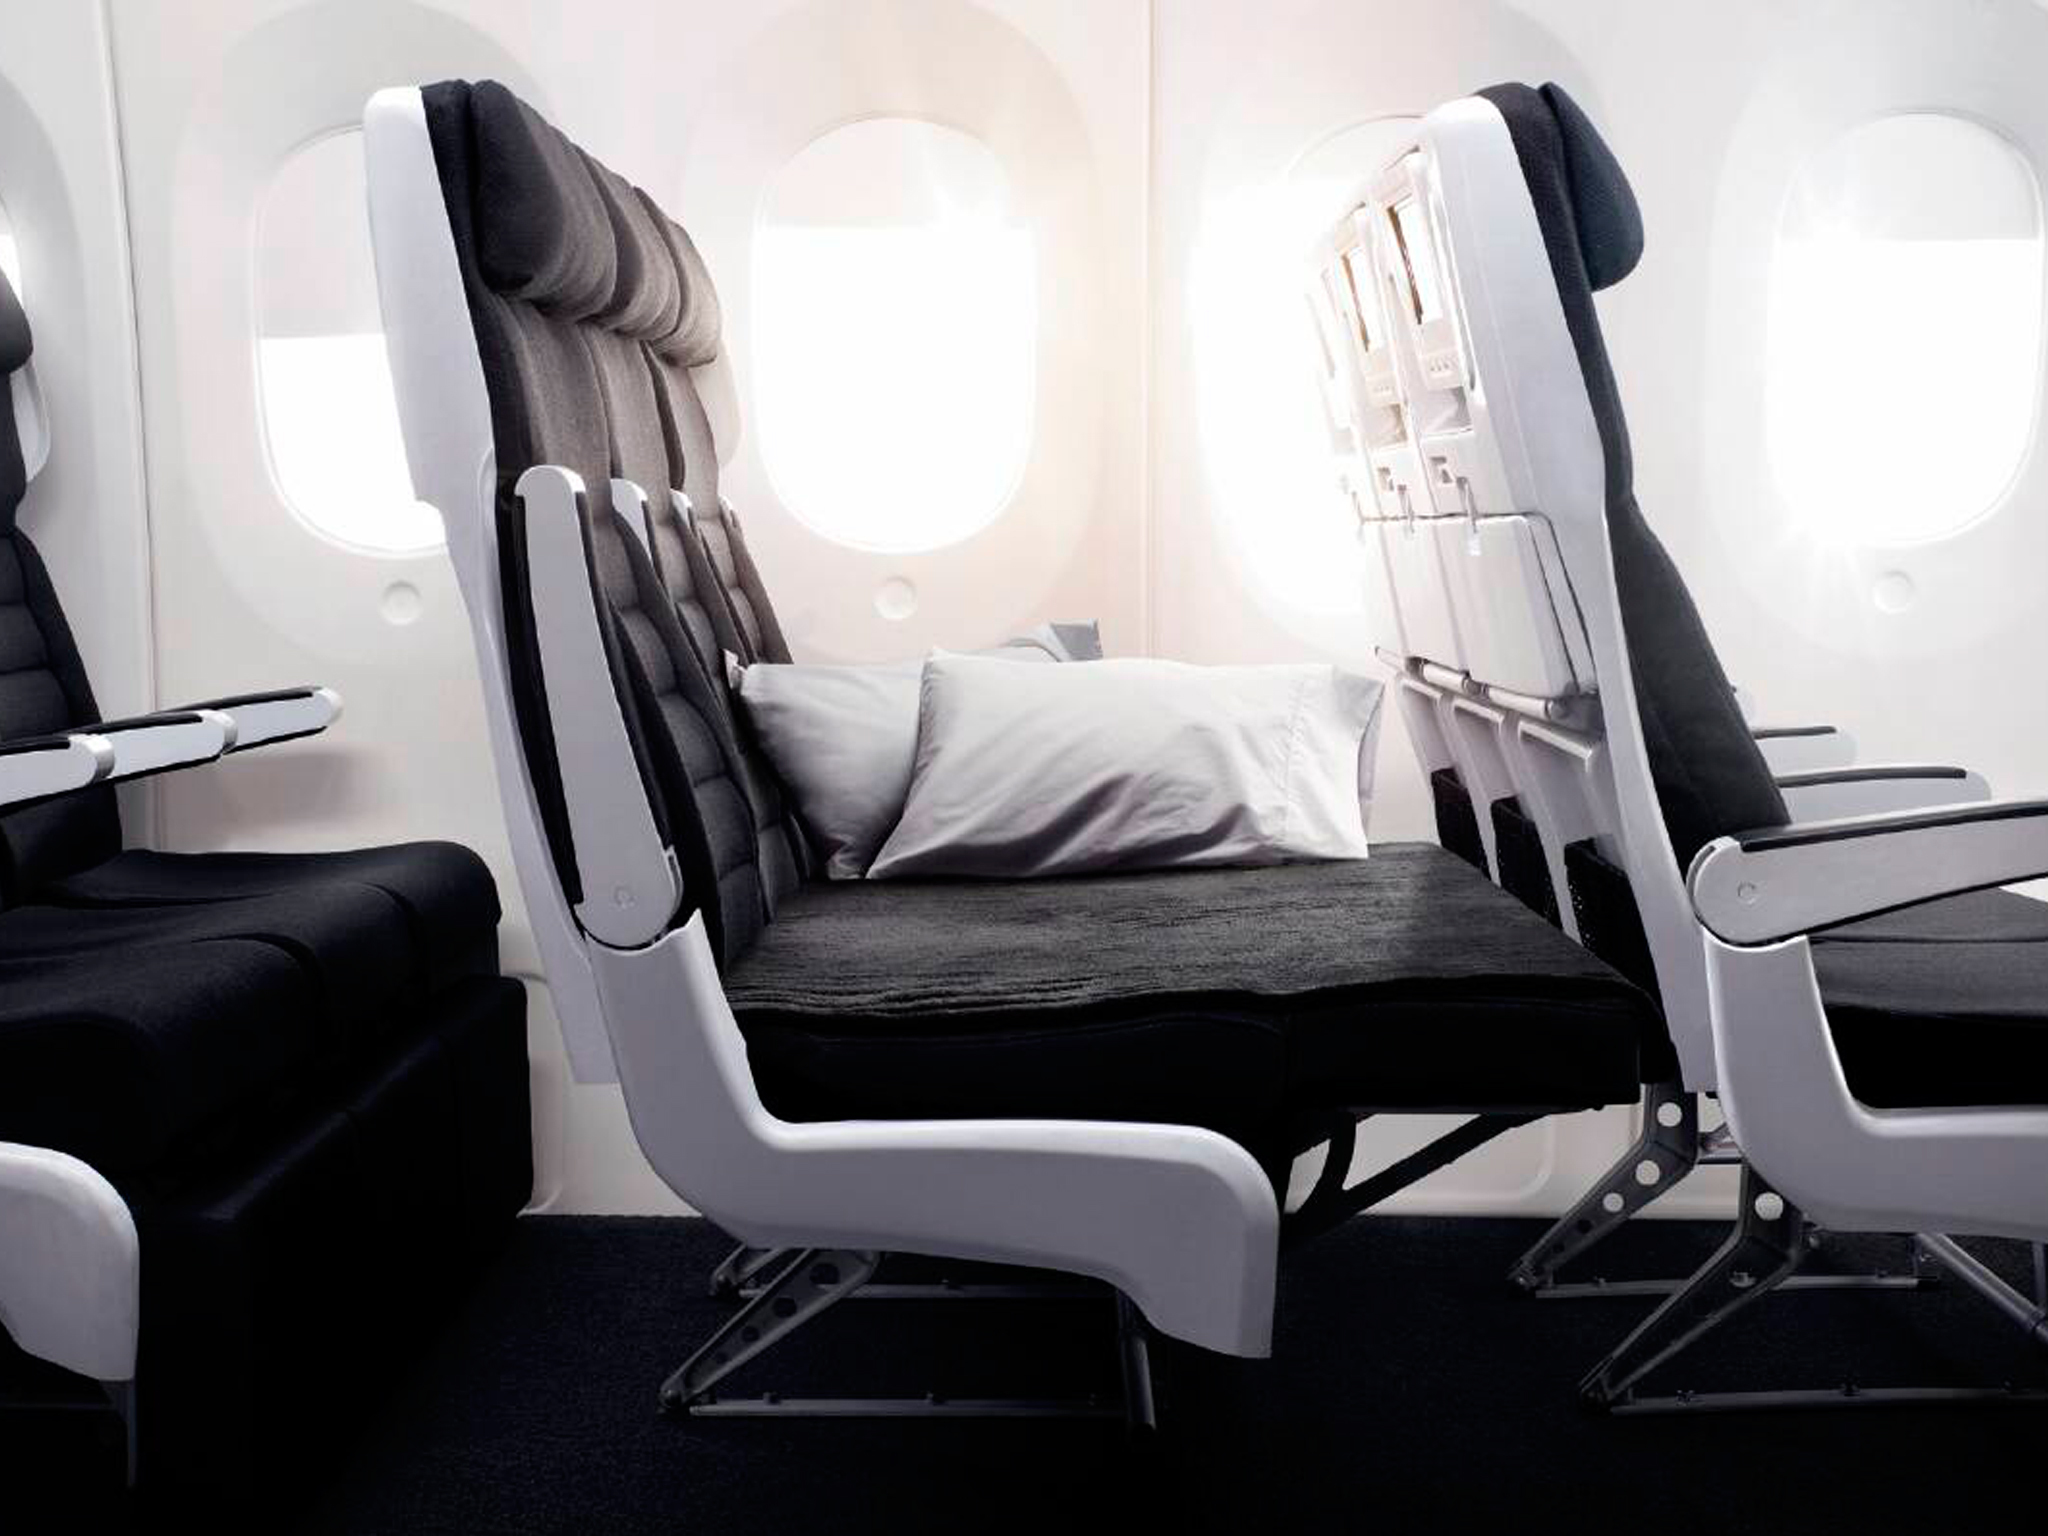 Your holiday starts with Air New Zealand